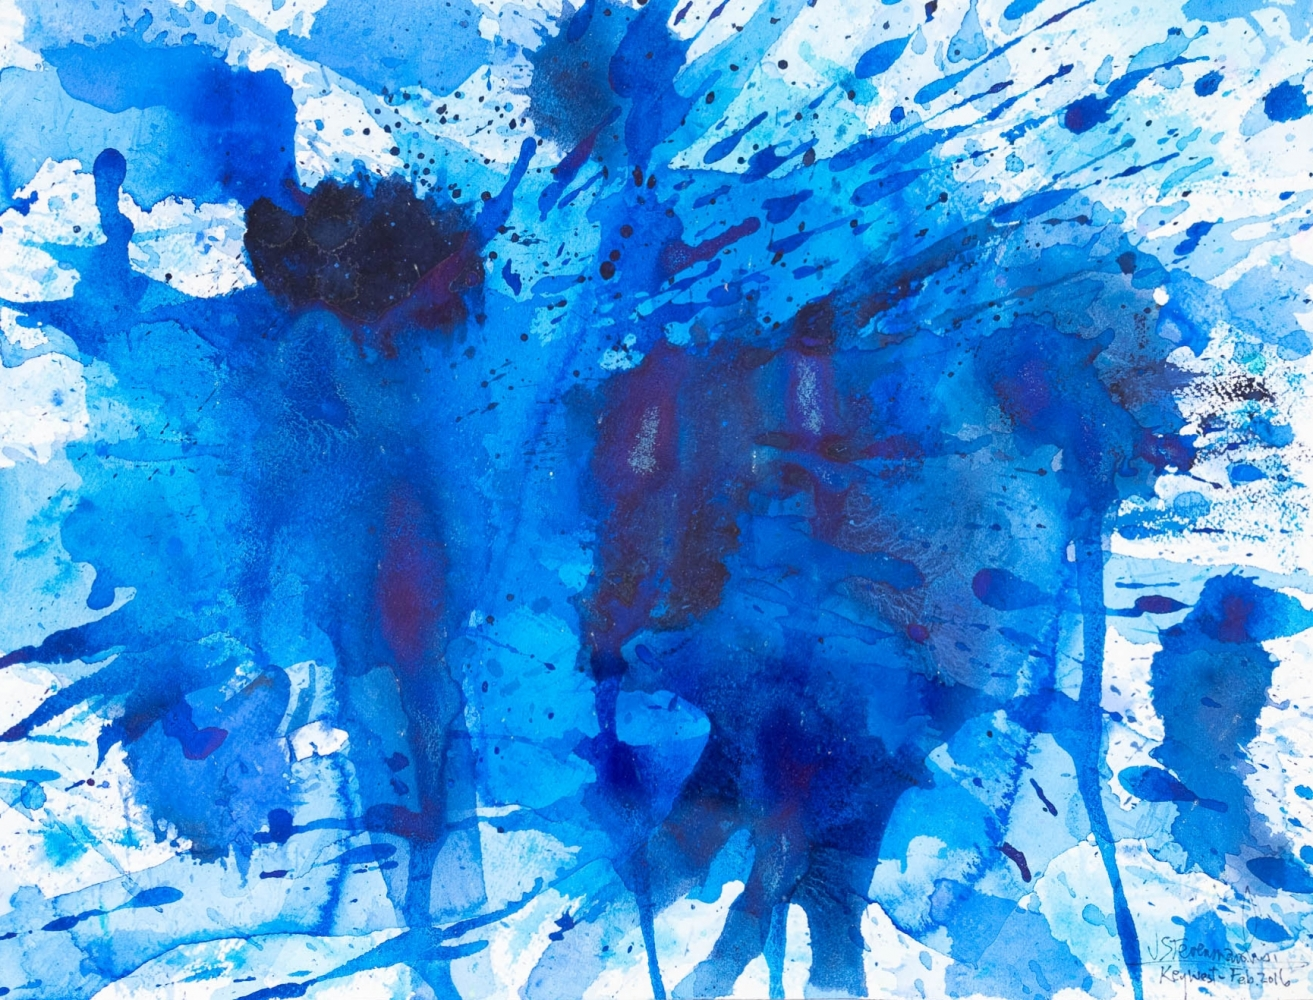 J. Steven Manolis, Splash-Key West (12.16.07), 2016, Watercolor, Acrylic and Gouache on paper, 12 x 16 inches, abstract expressionism art